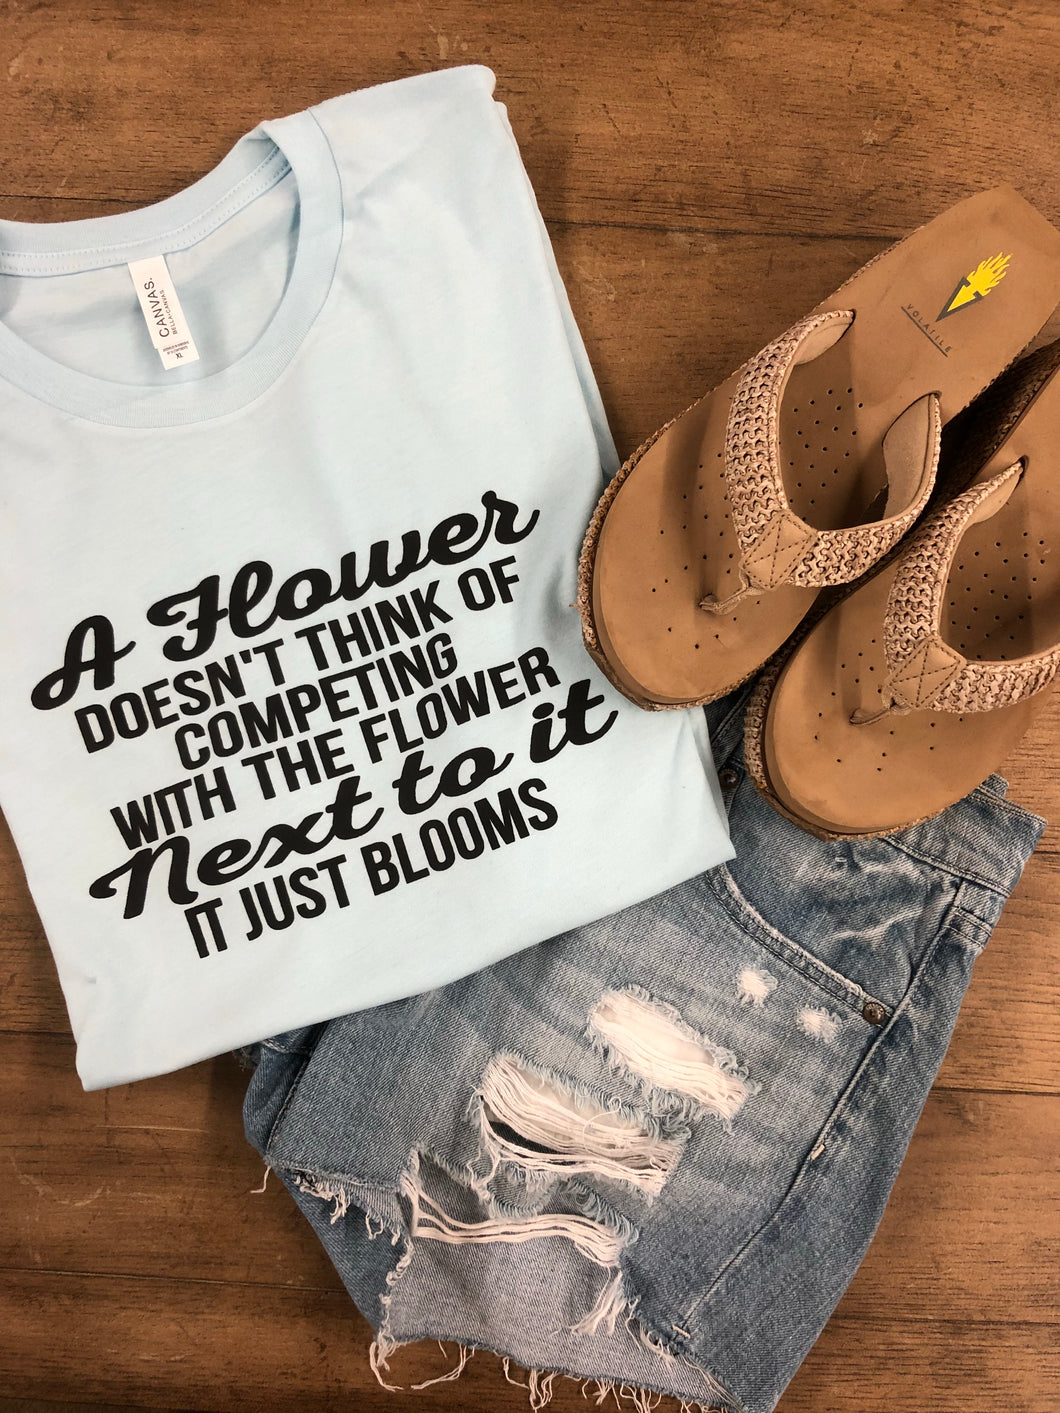 A flower doesn't compete tee